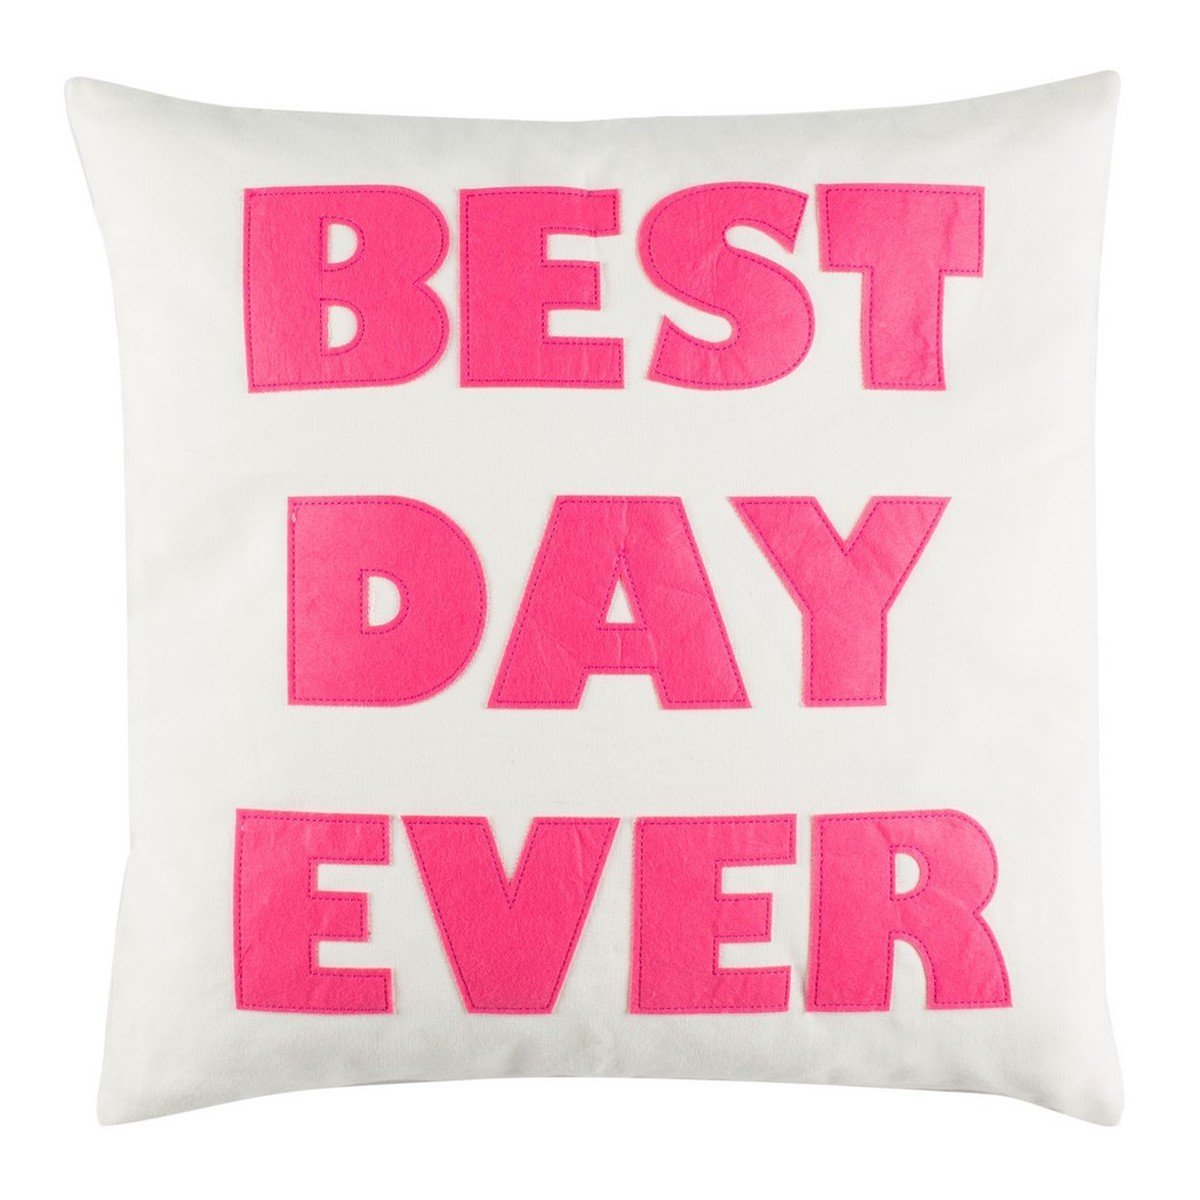 Best Day Ever Pillow.